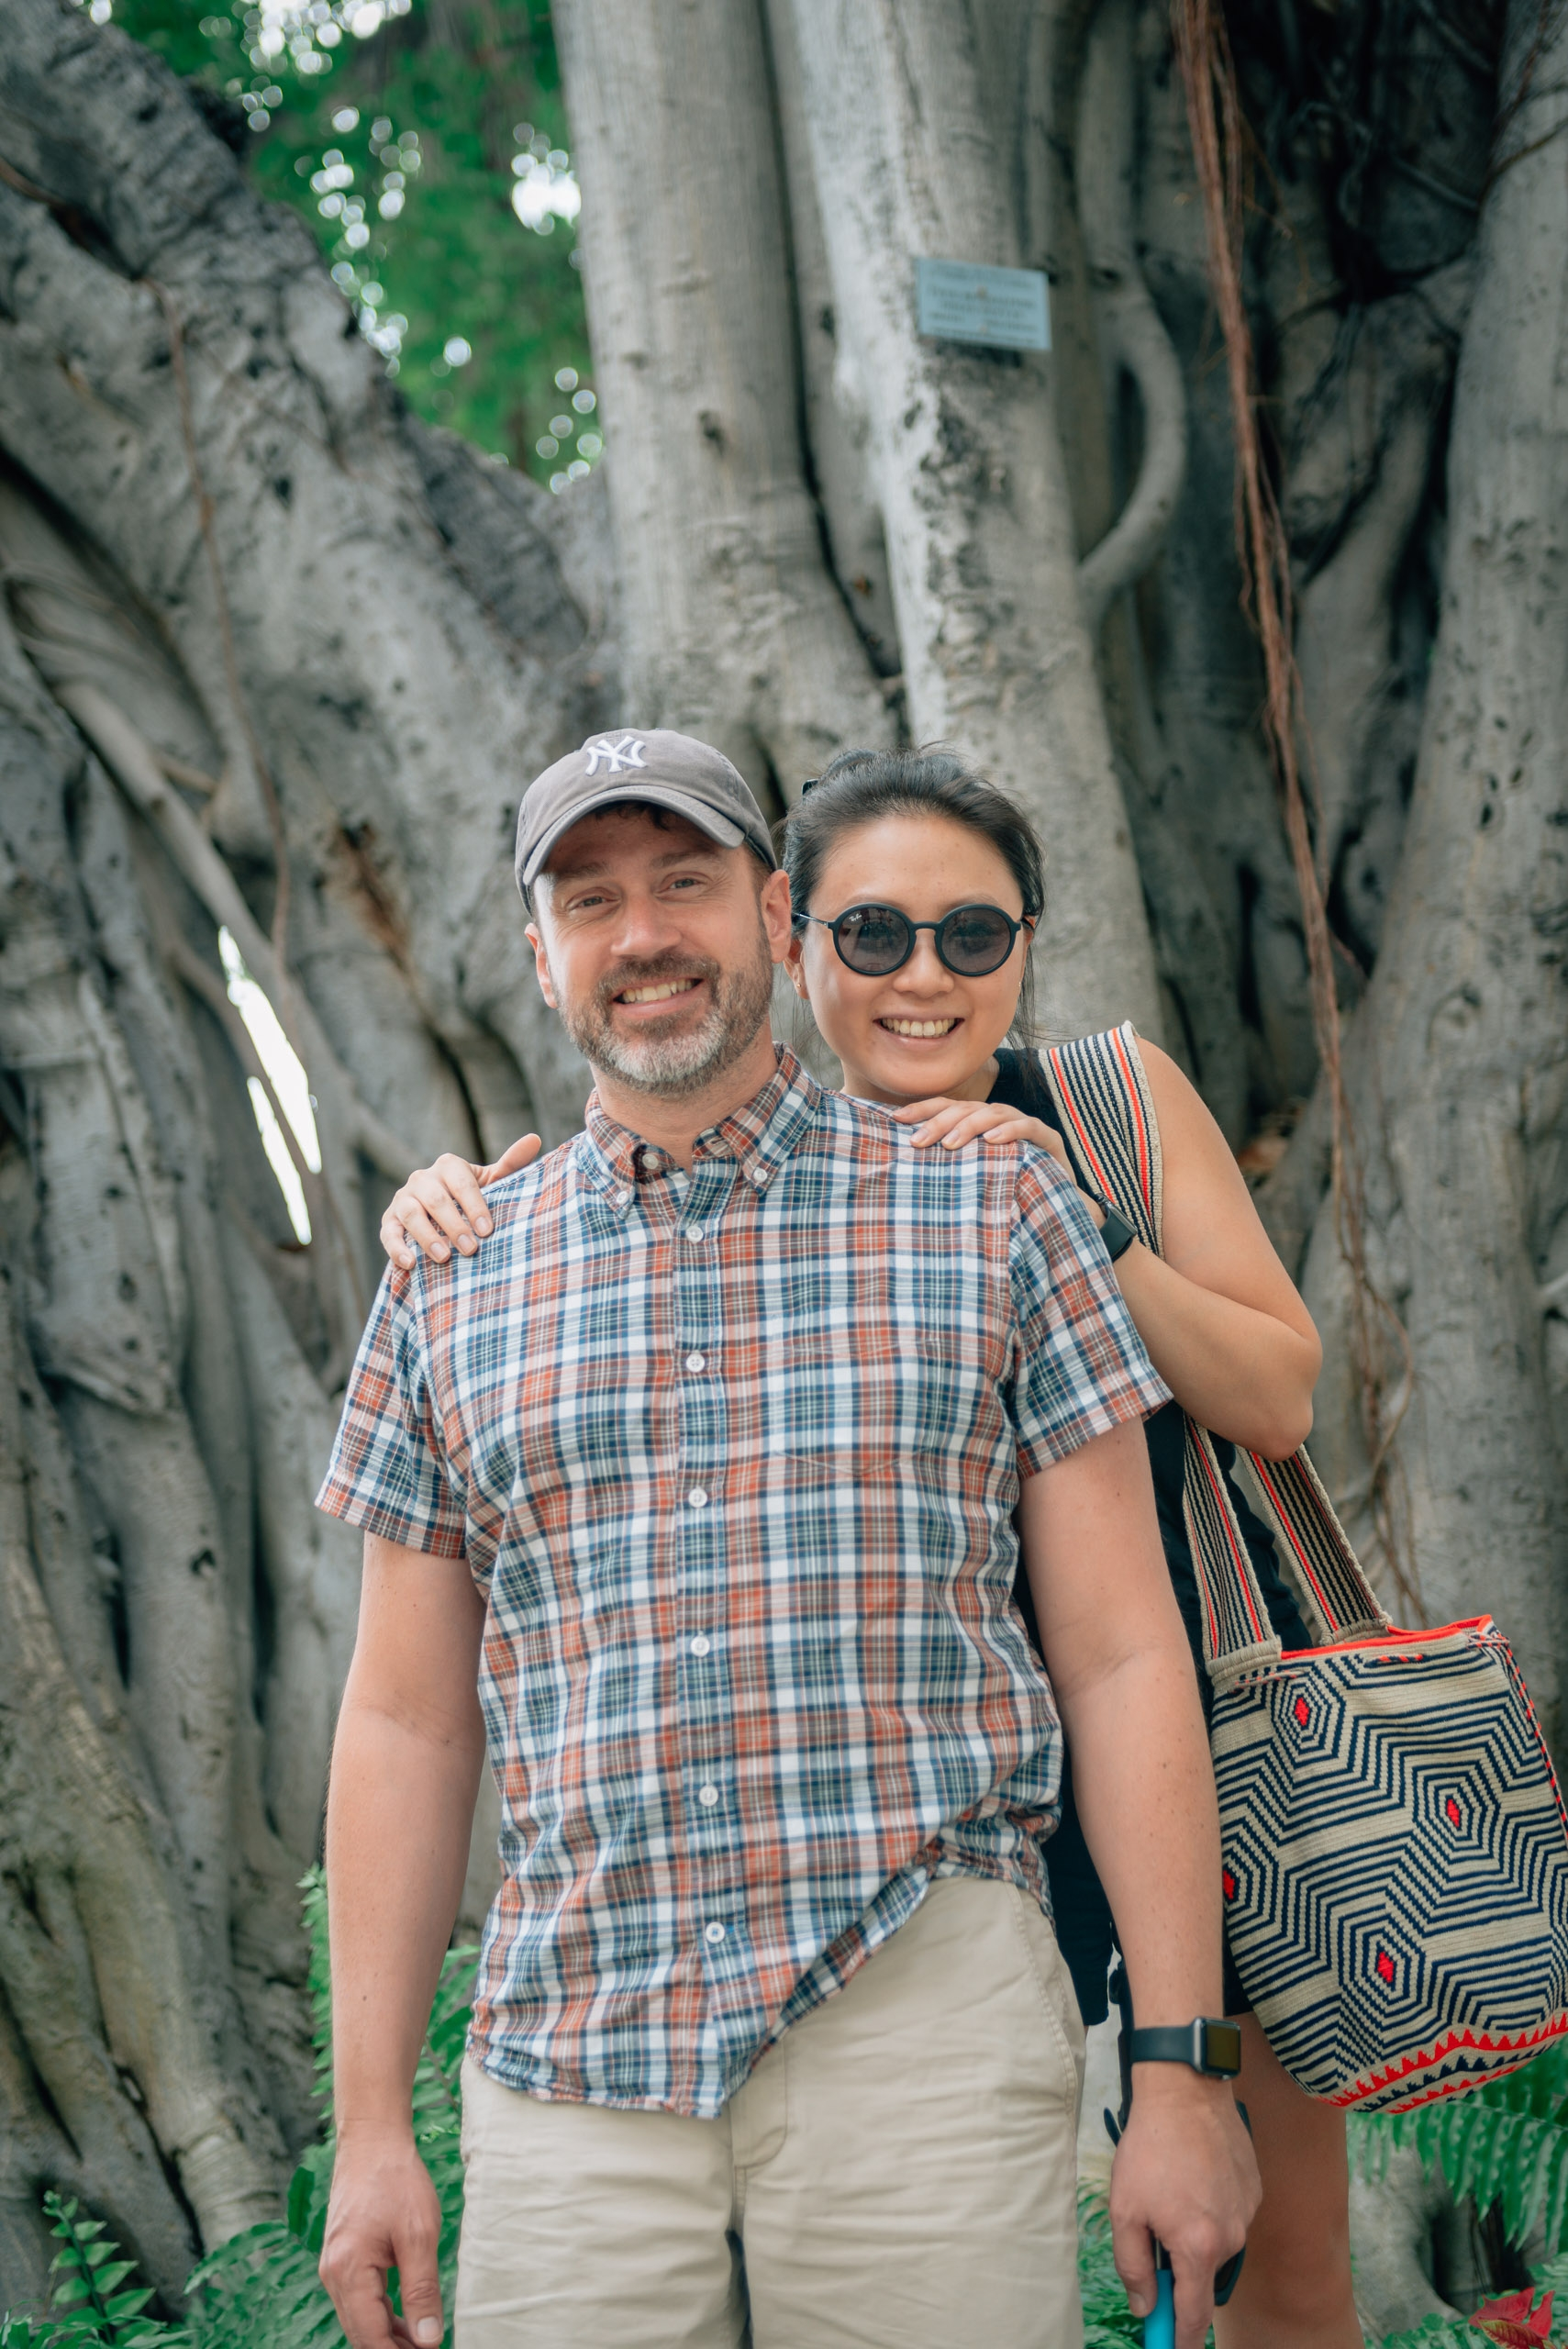 Kris and Jessica at the Moana Surfrider Banyan Tree 2